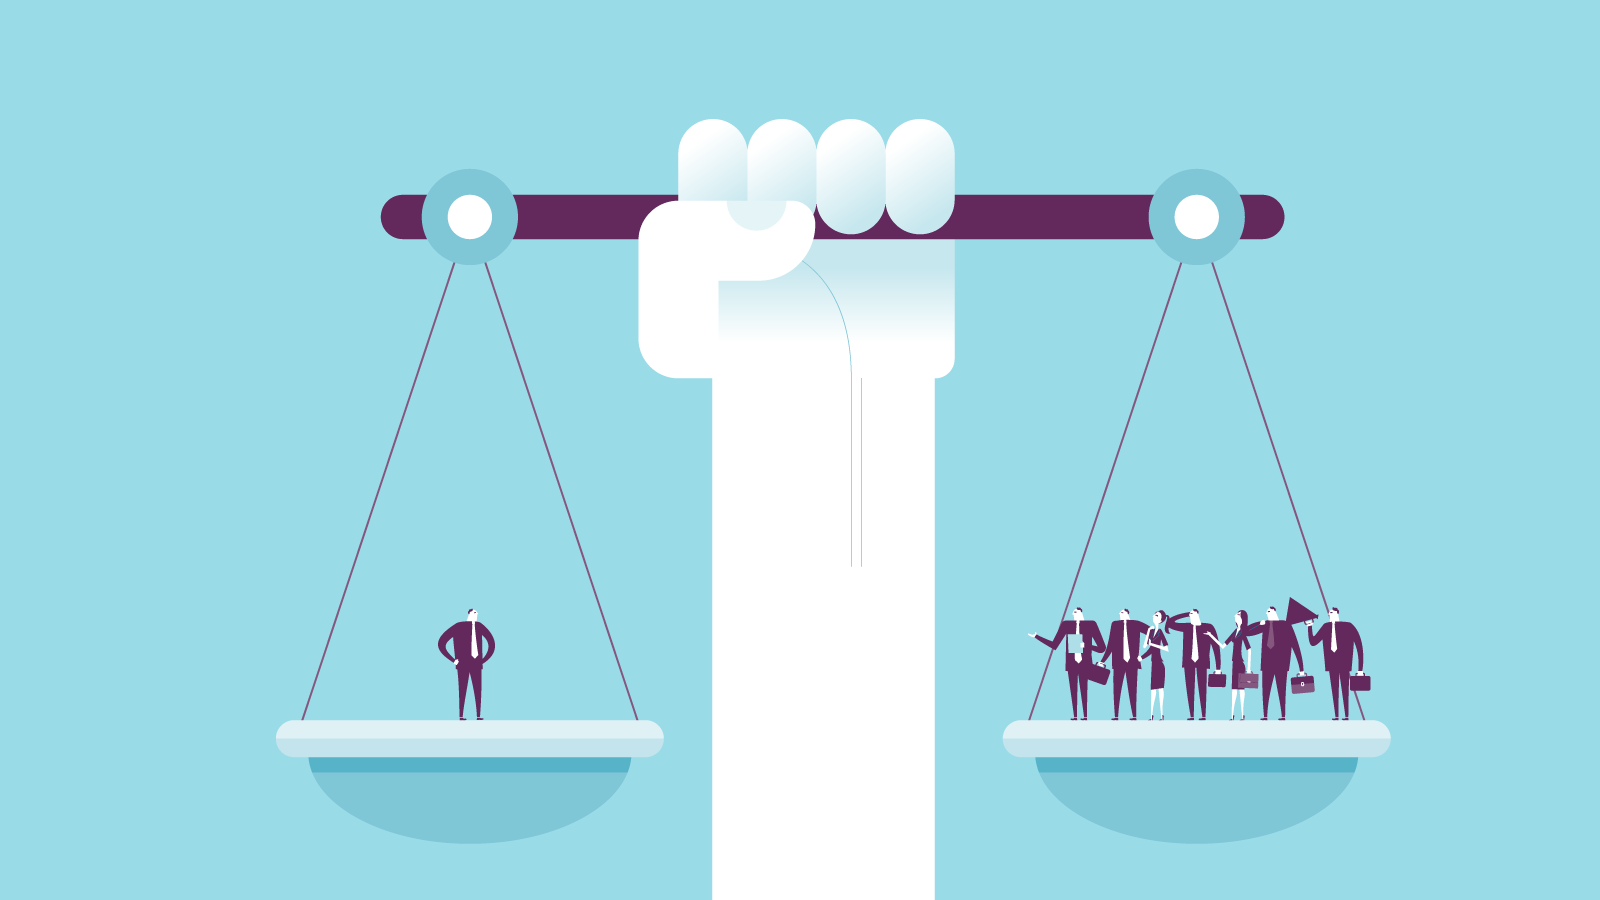 Illustration of large balance weighing people held up by arm.